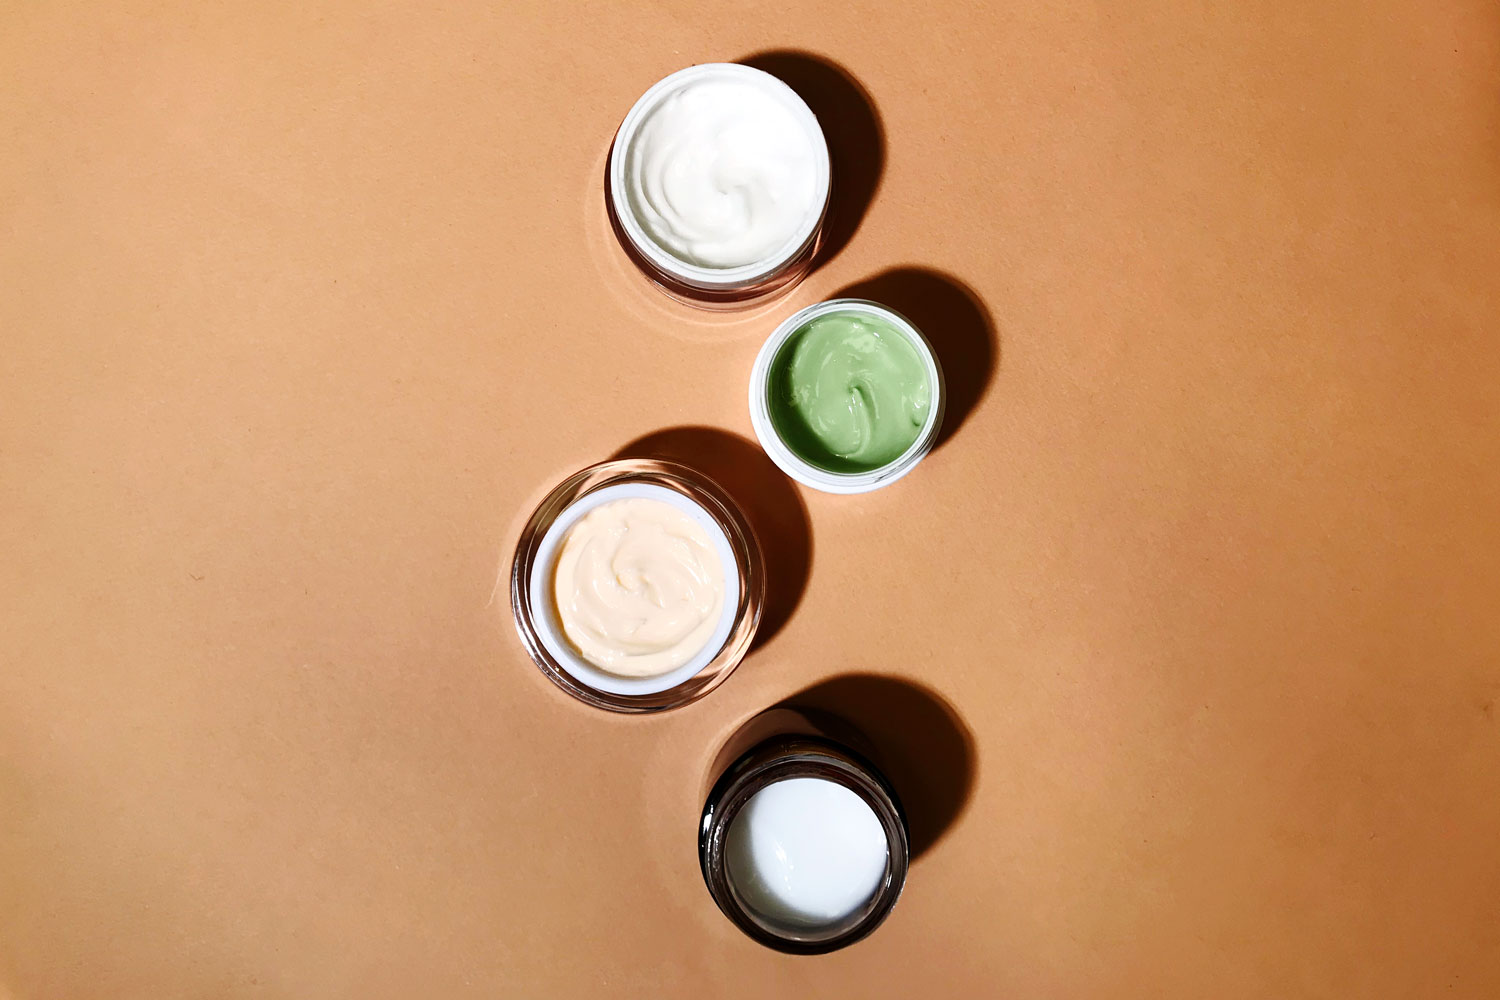 moisturizers with lids open to show texture